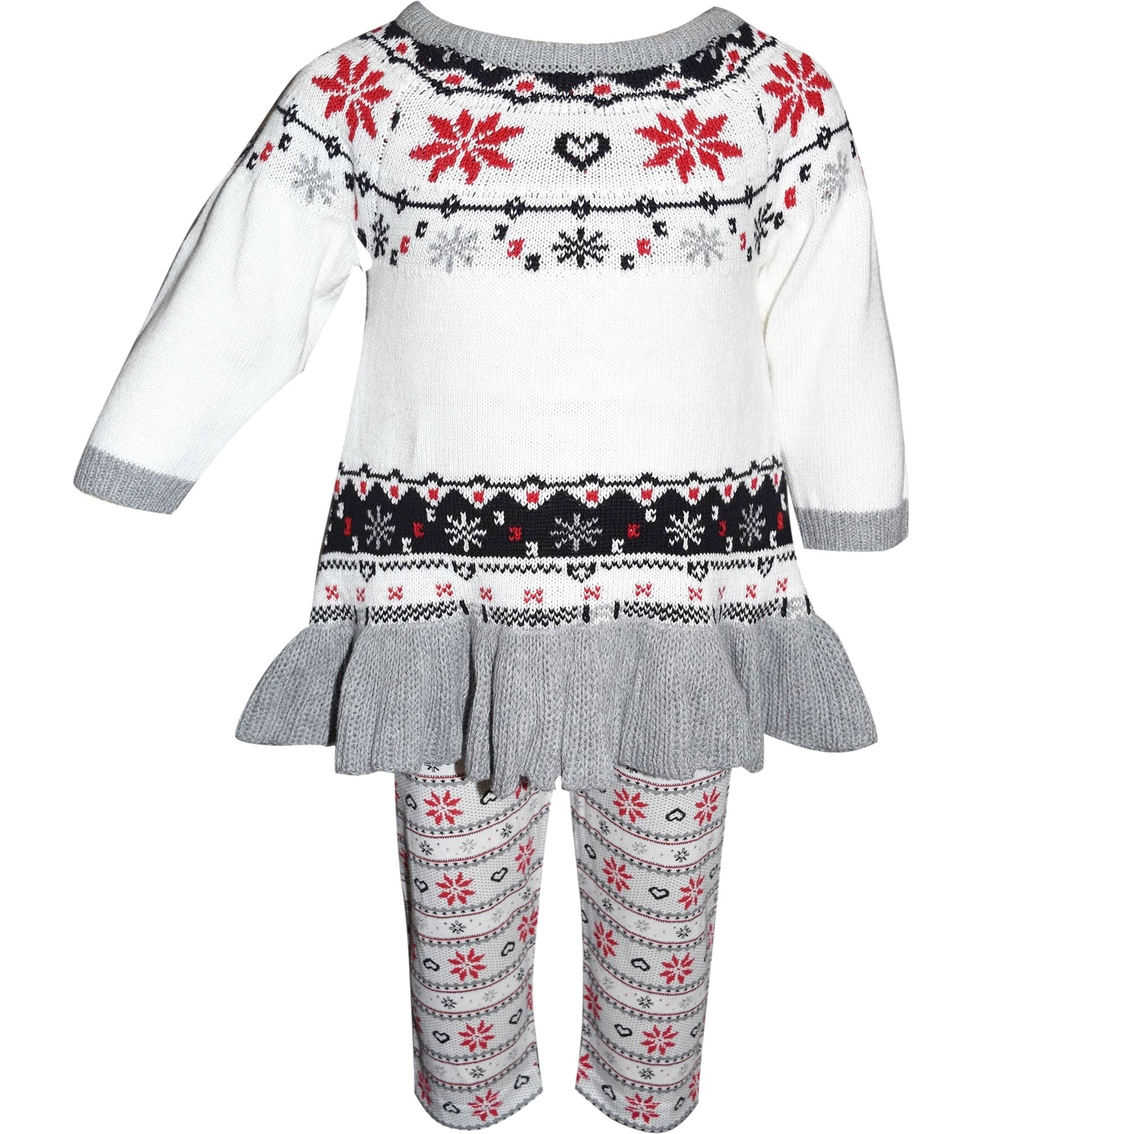 73da4d5b3 Blueberi Boulevard Infant Girls 2 Pc. Fair Isle Sweater Dress And ...